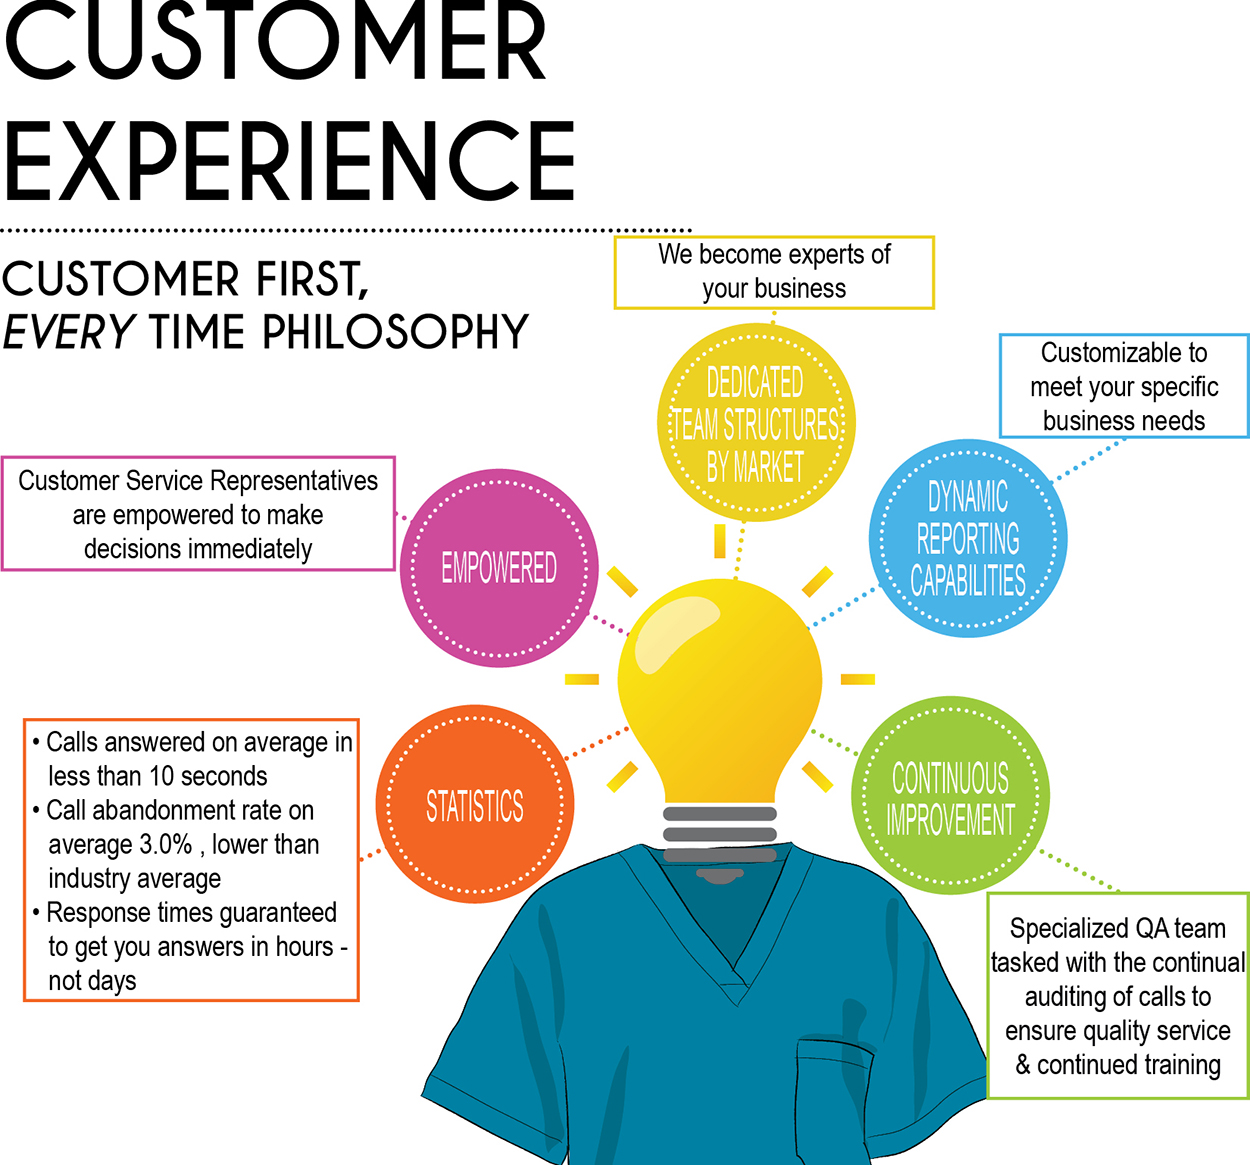 Customer Experience from Fashion Seal Healthcare